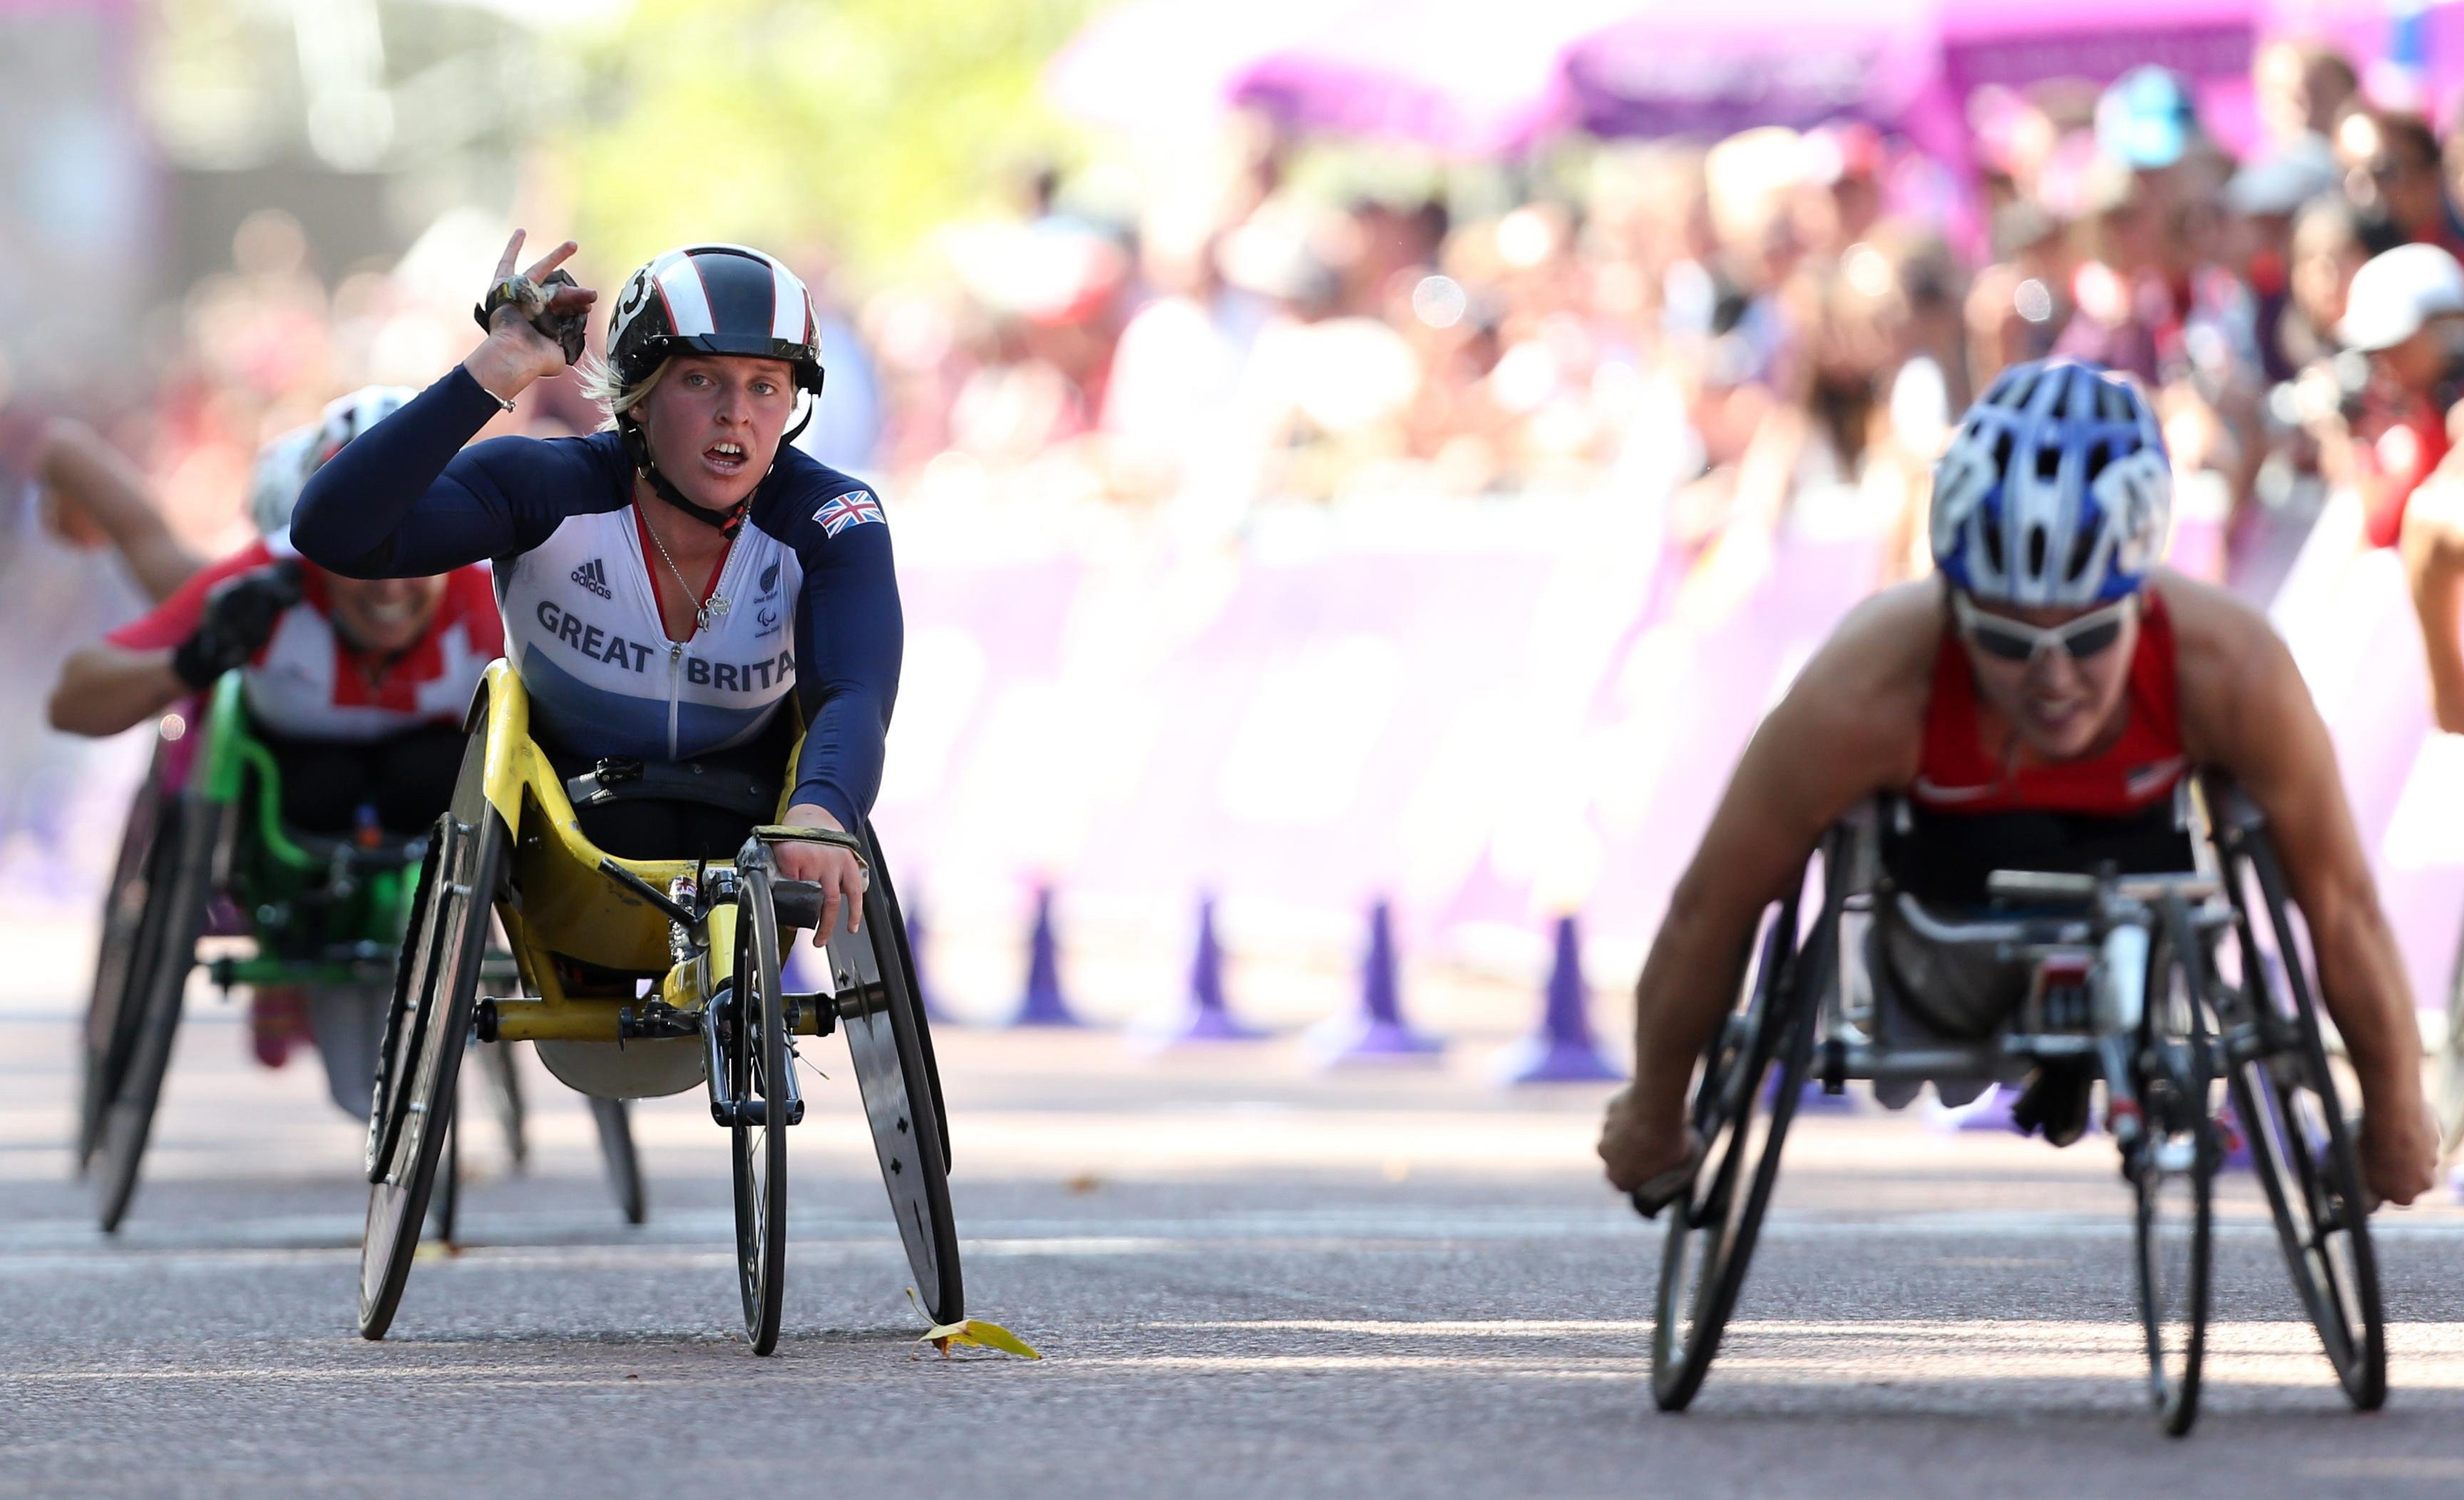 Marathon events at 2020 Paralympic Games to remain in Tokyo despite heat concerns